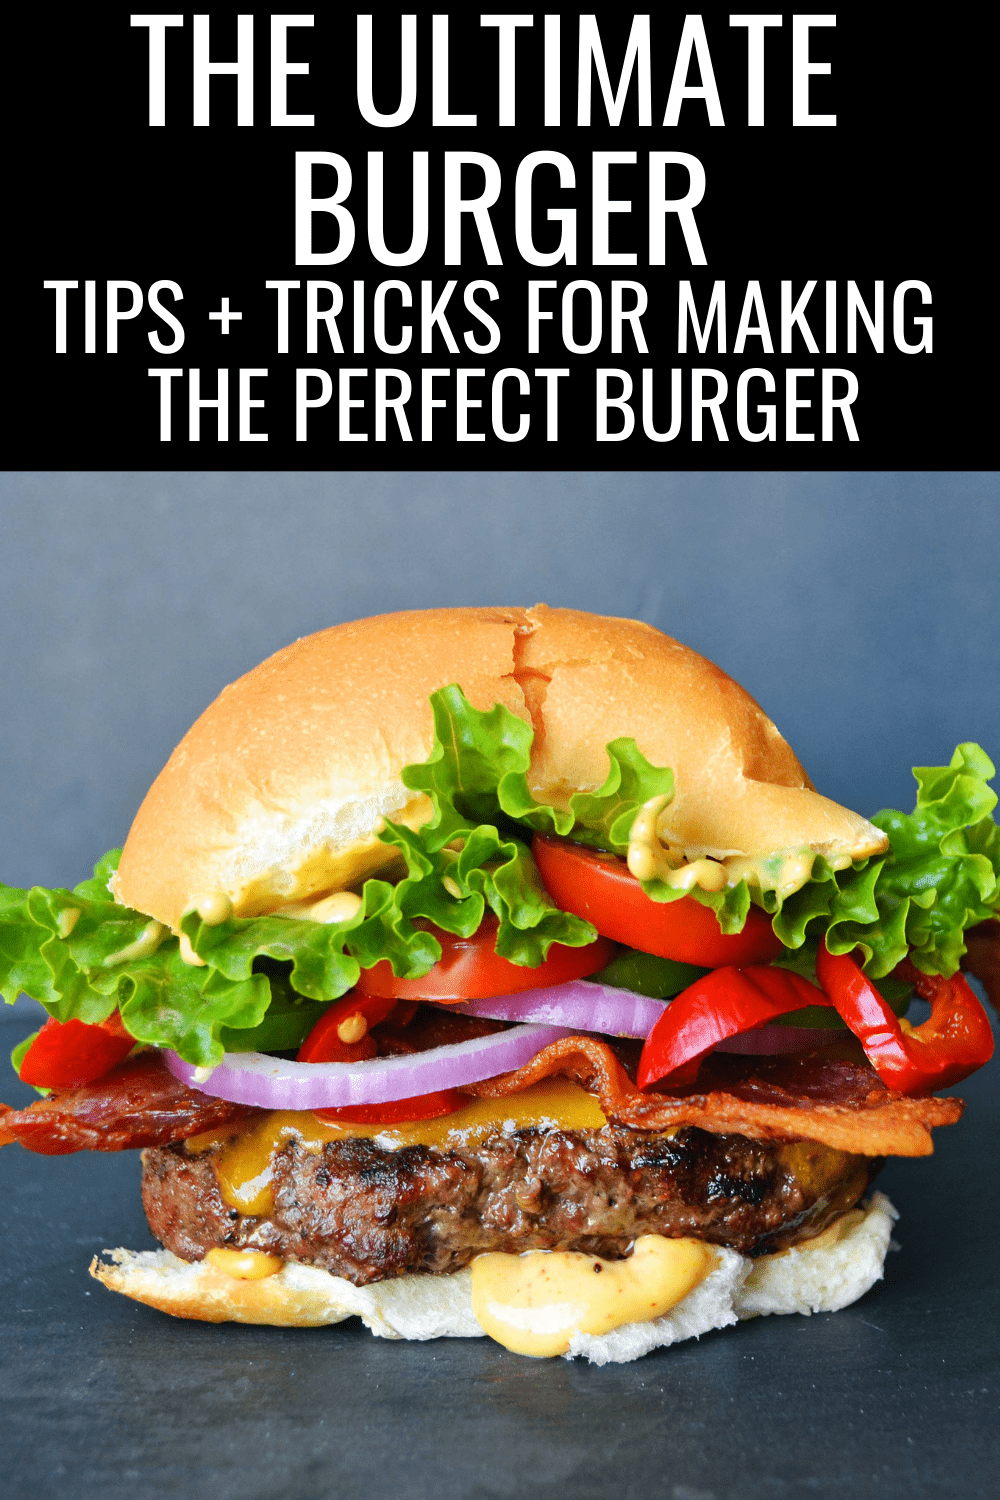 The Ultimate Burger. Tips and tricks for grilling up the perfect burger. How to make the best burger. How to grill a burger. Grilling a burger tips. #grilling #burger #burgers